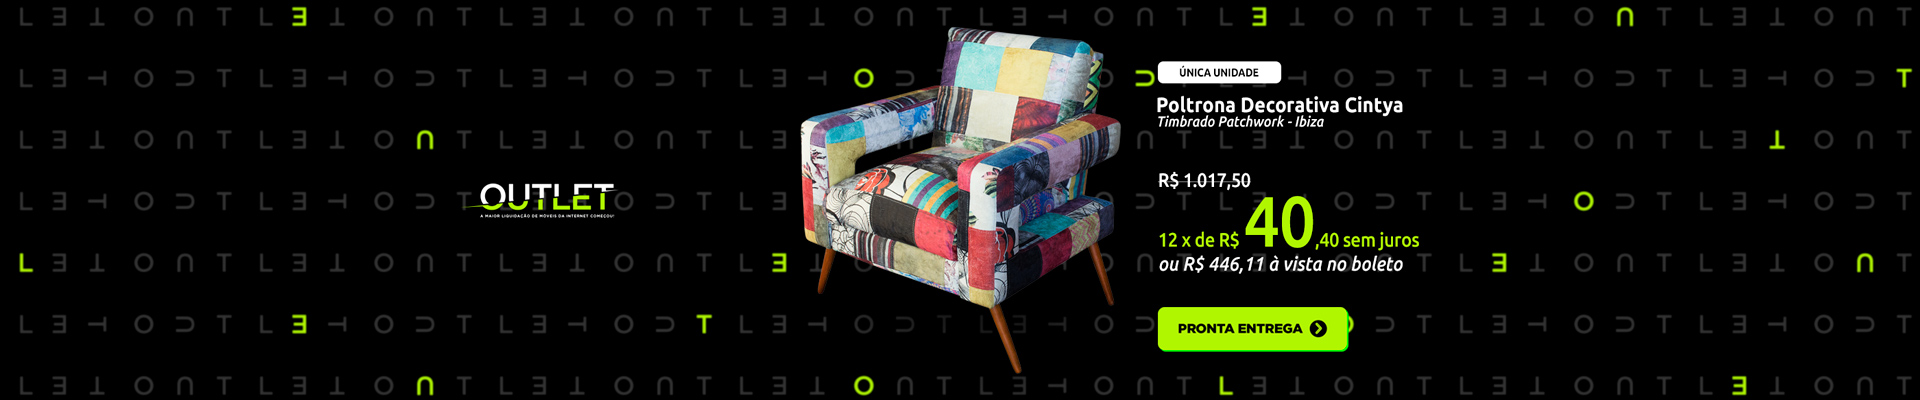 Outlet - Poltrona Patchwork